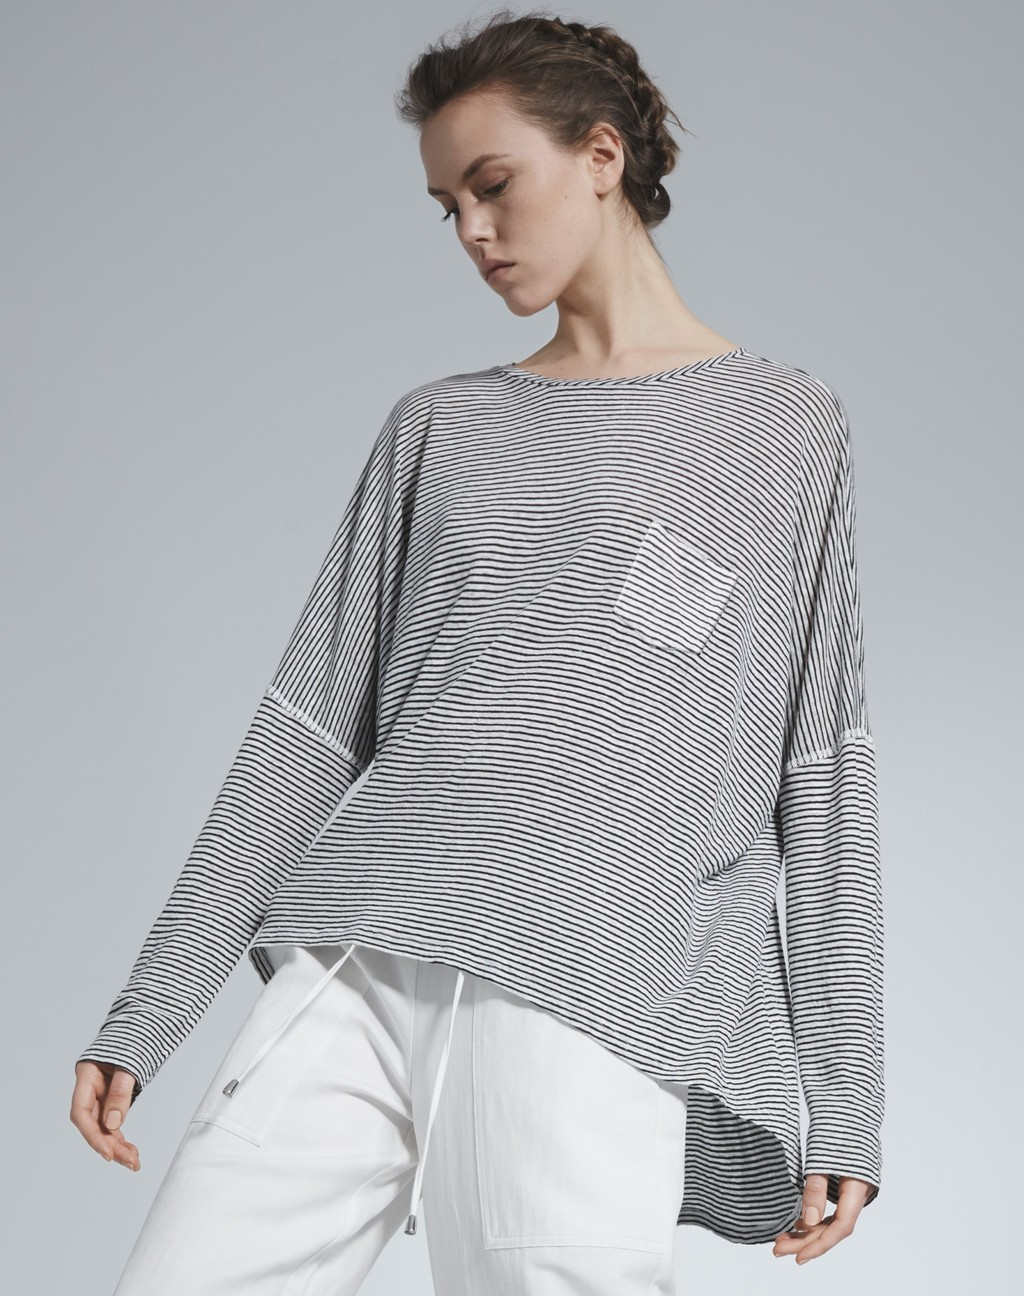 Oversized Slouchy Tee Soft White/Black - neckline: round neck; sleeve style: dolman/batwing; pattern: plain; length: below the bottom; style: t-shirt; predominant colour: light grey; occasions: casual; fibres: linen - mix; fit: loose; sleeve length: long sleeve; pattern type: fabric; texture group: jersey - stretchy/drapey; season: s/s 2016